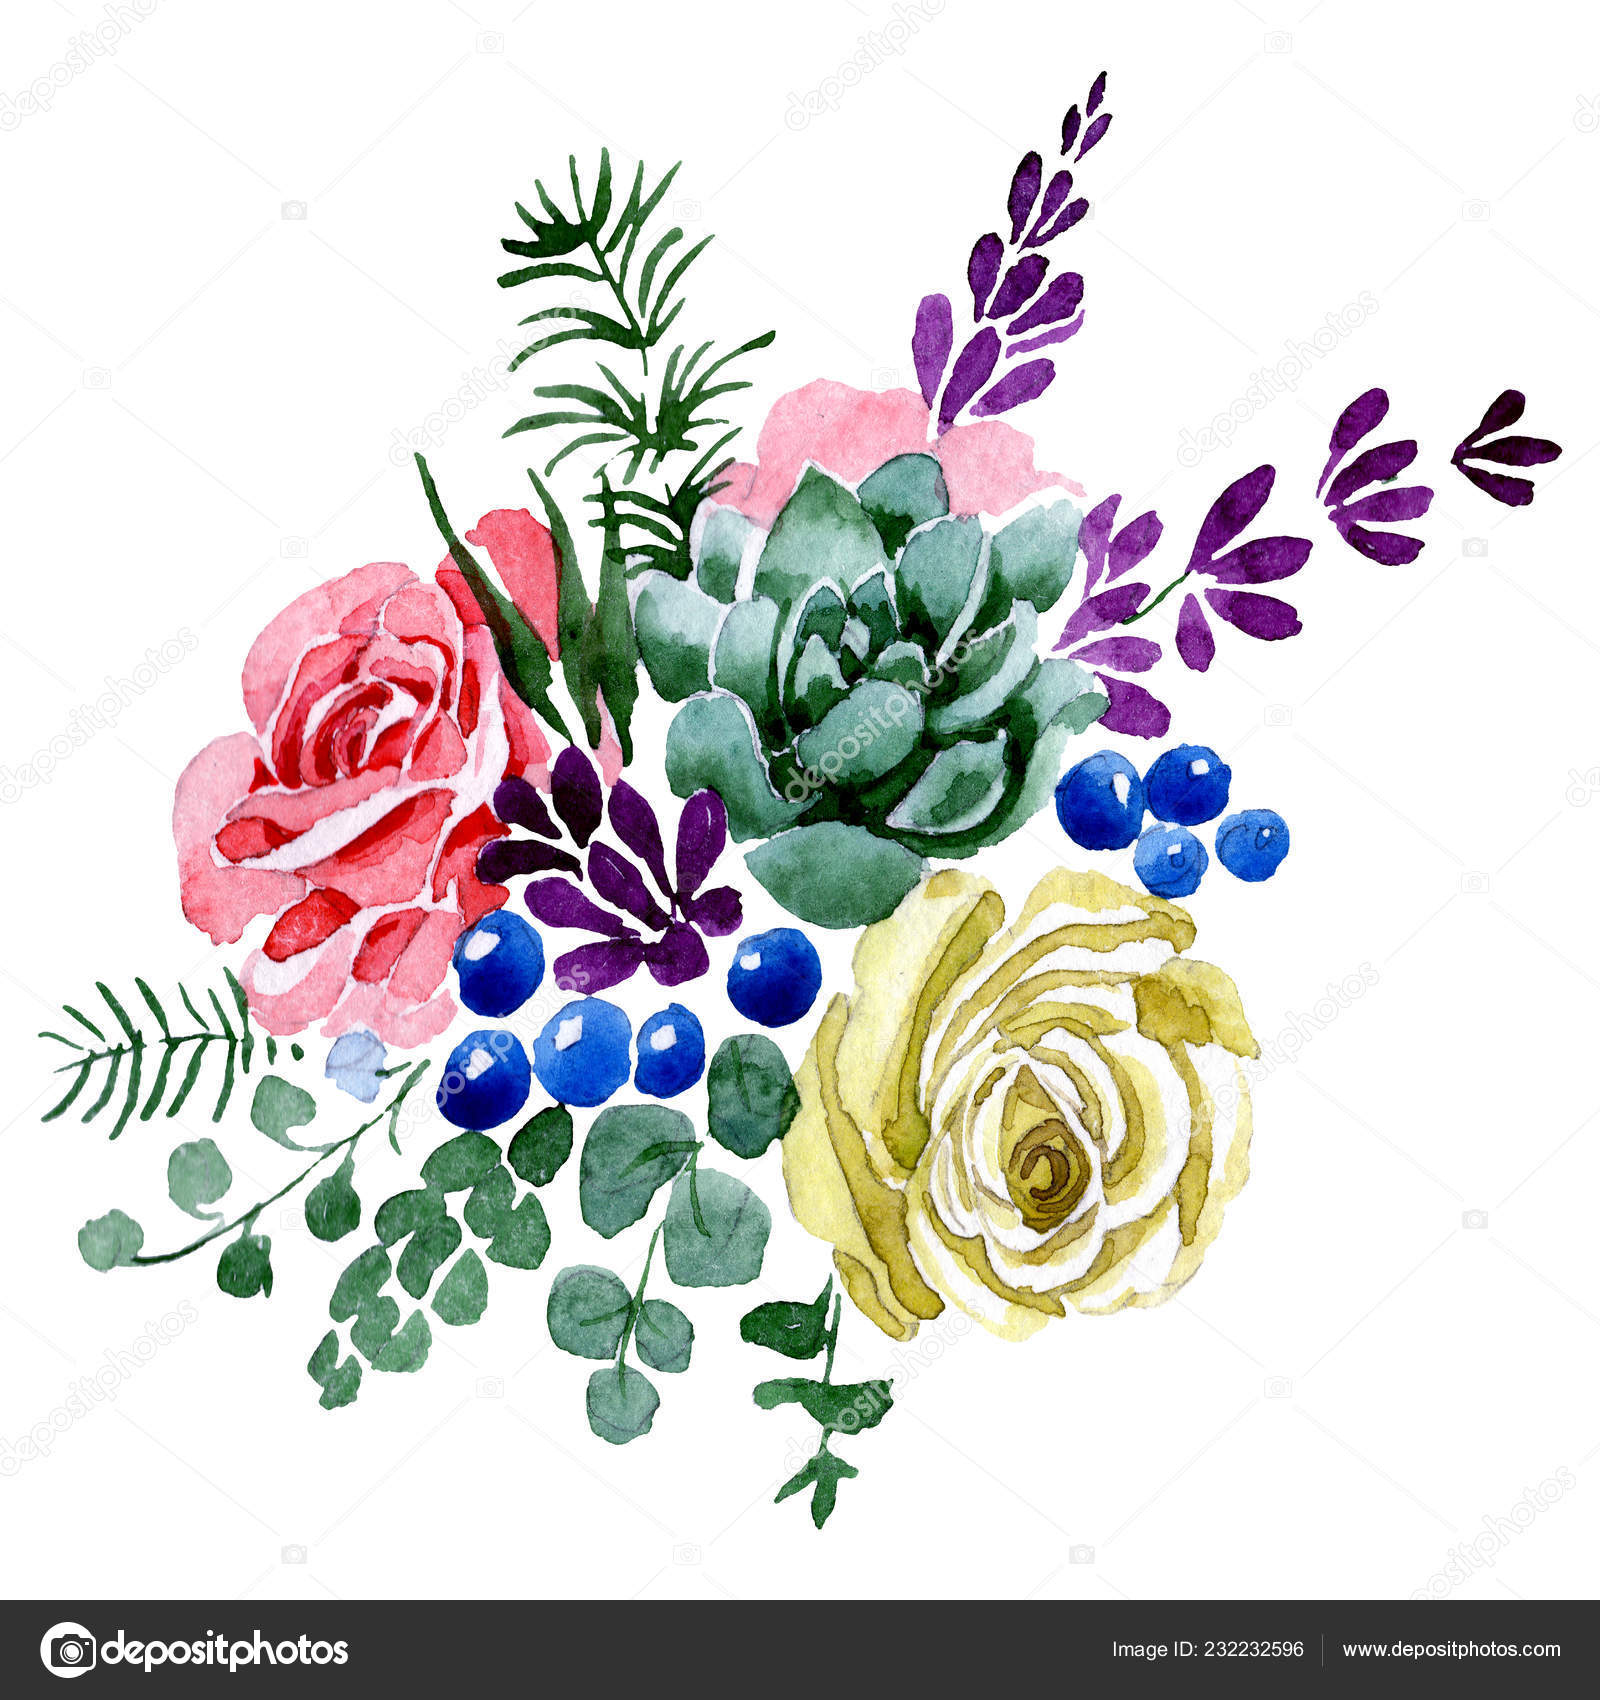 Succulent And Rose Bouquet Flowers Watercolor Background Illustration Set Isolated Bouquet Illustration Element Stock Photo Image By C Mystocks 232232596